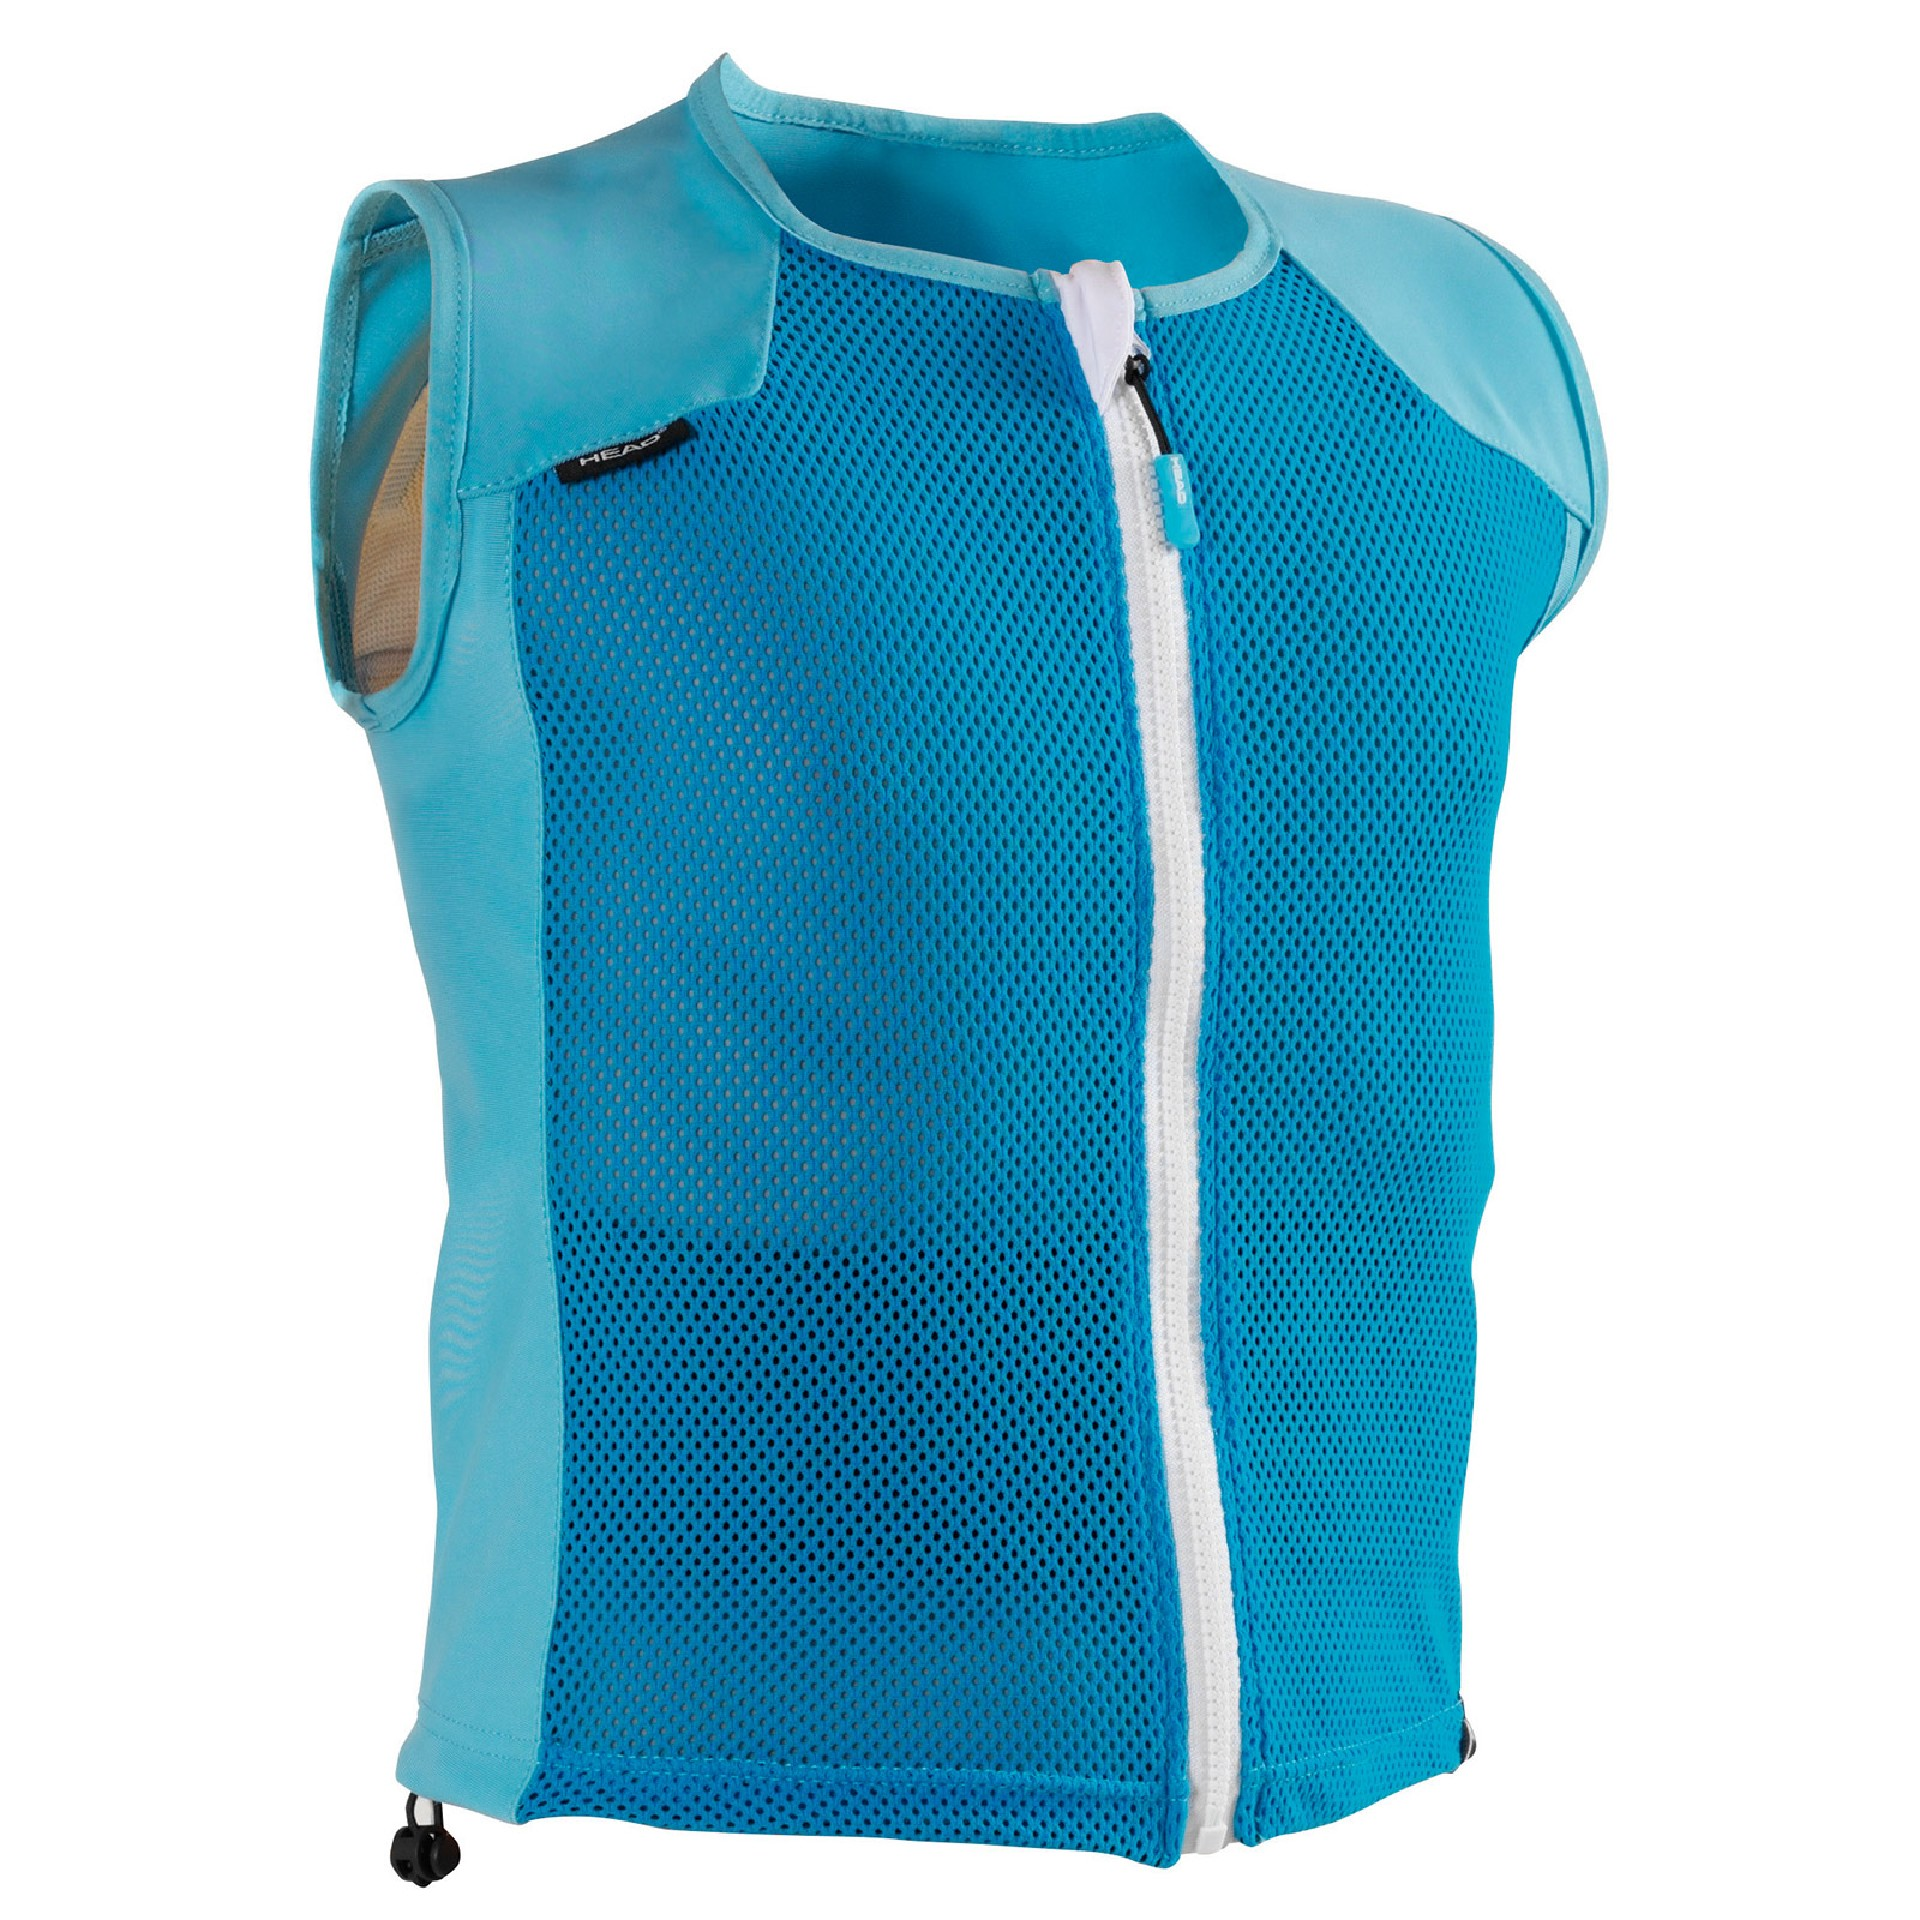 HEAD FLEXOR JR VEST 2015/16